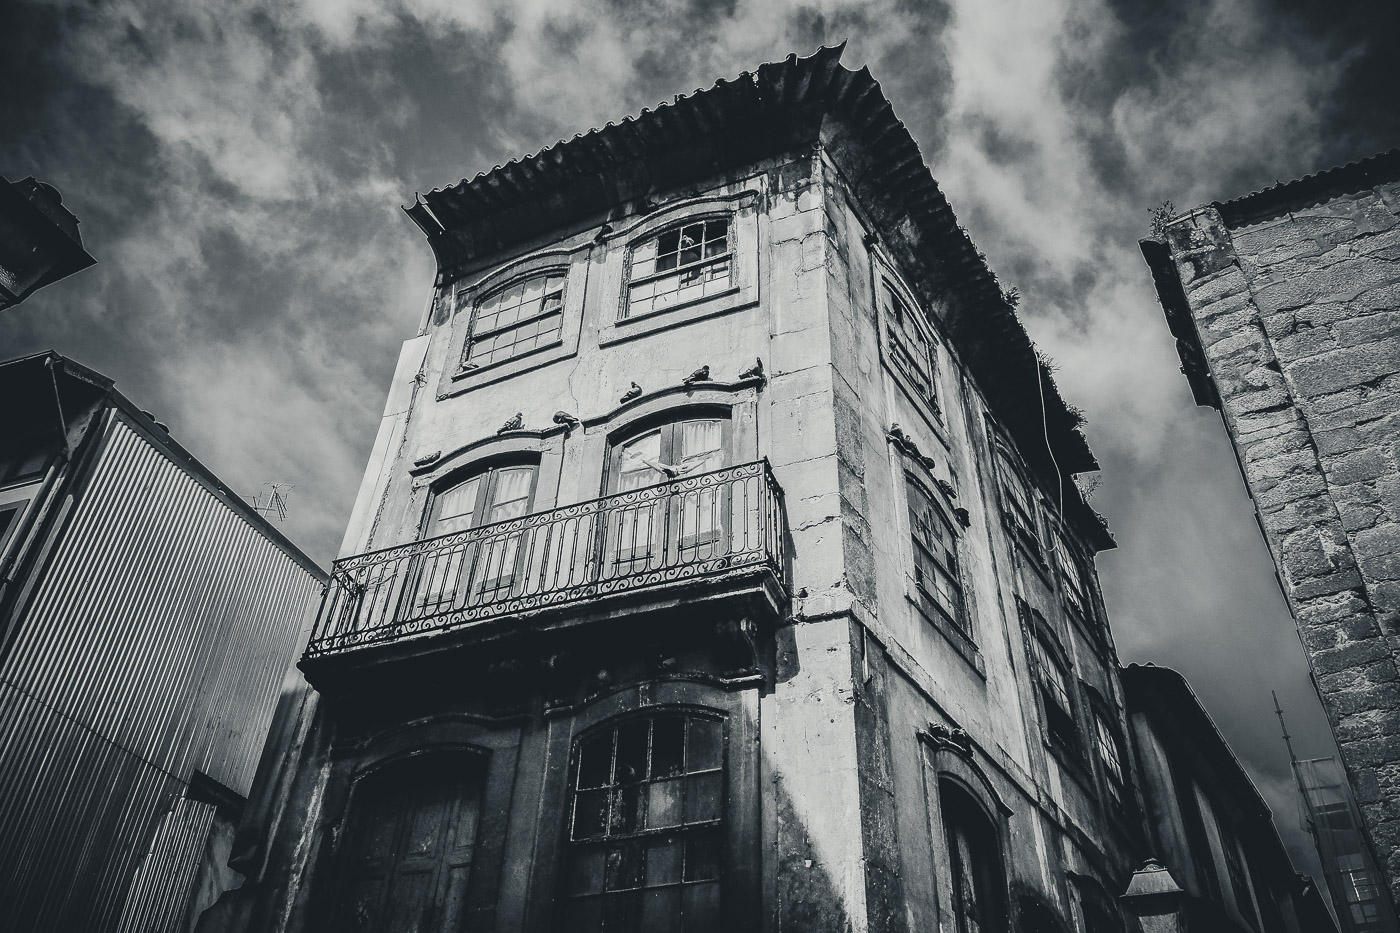 hb images - Porto - b-w street building and bird_